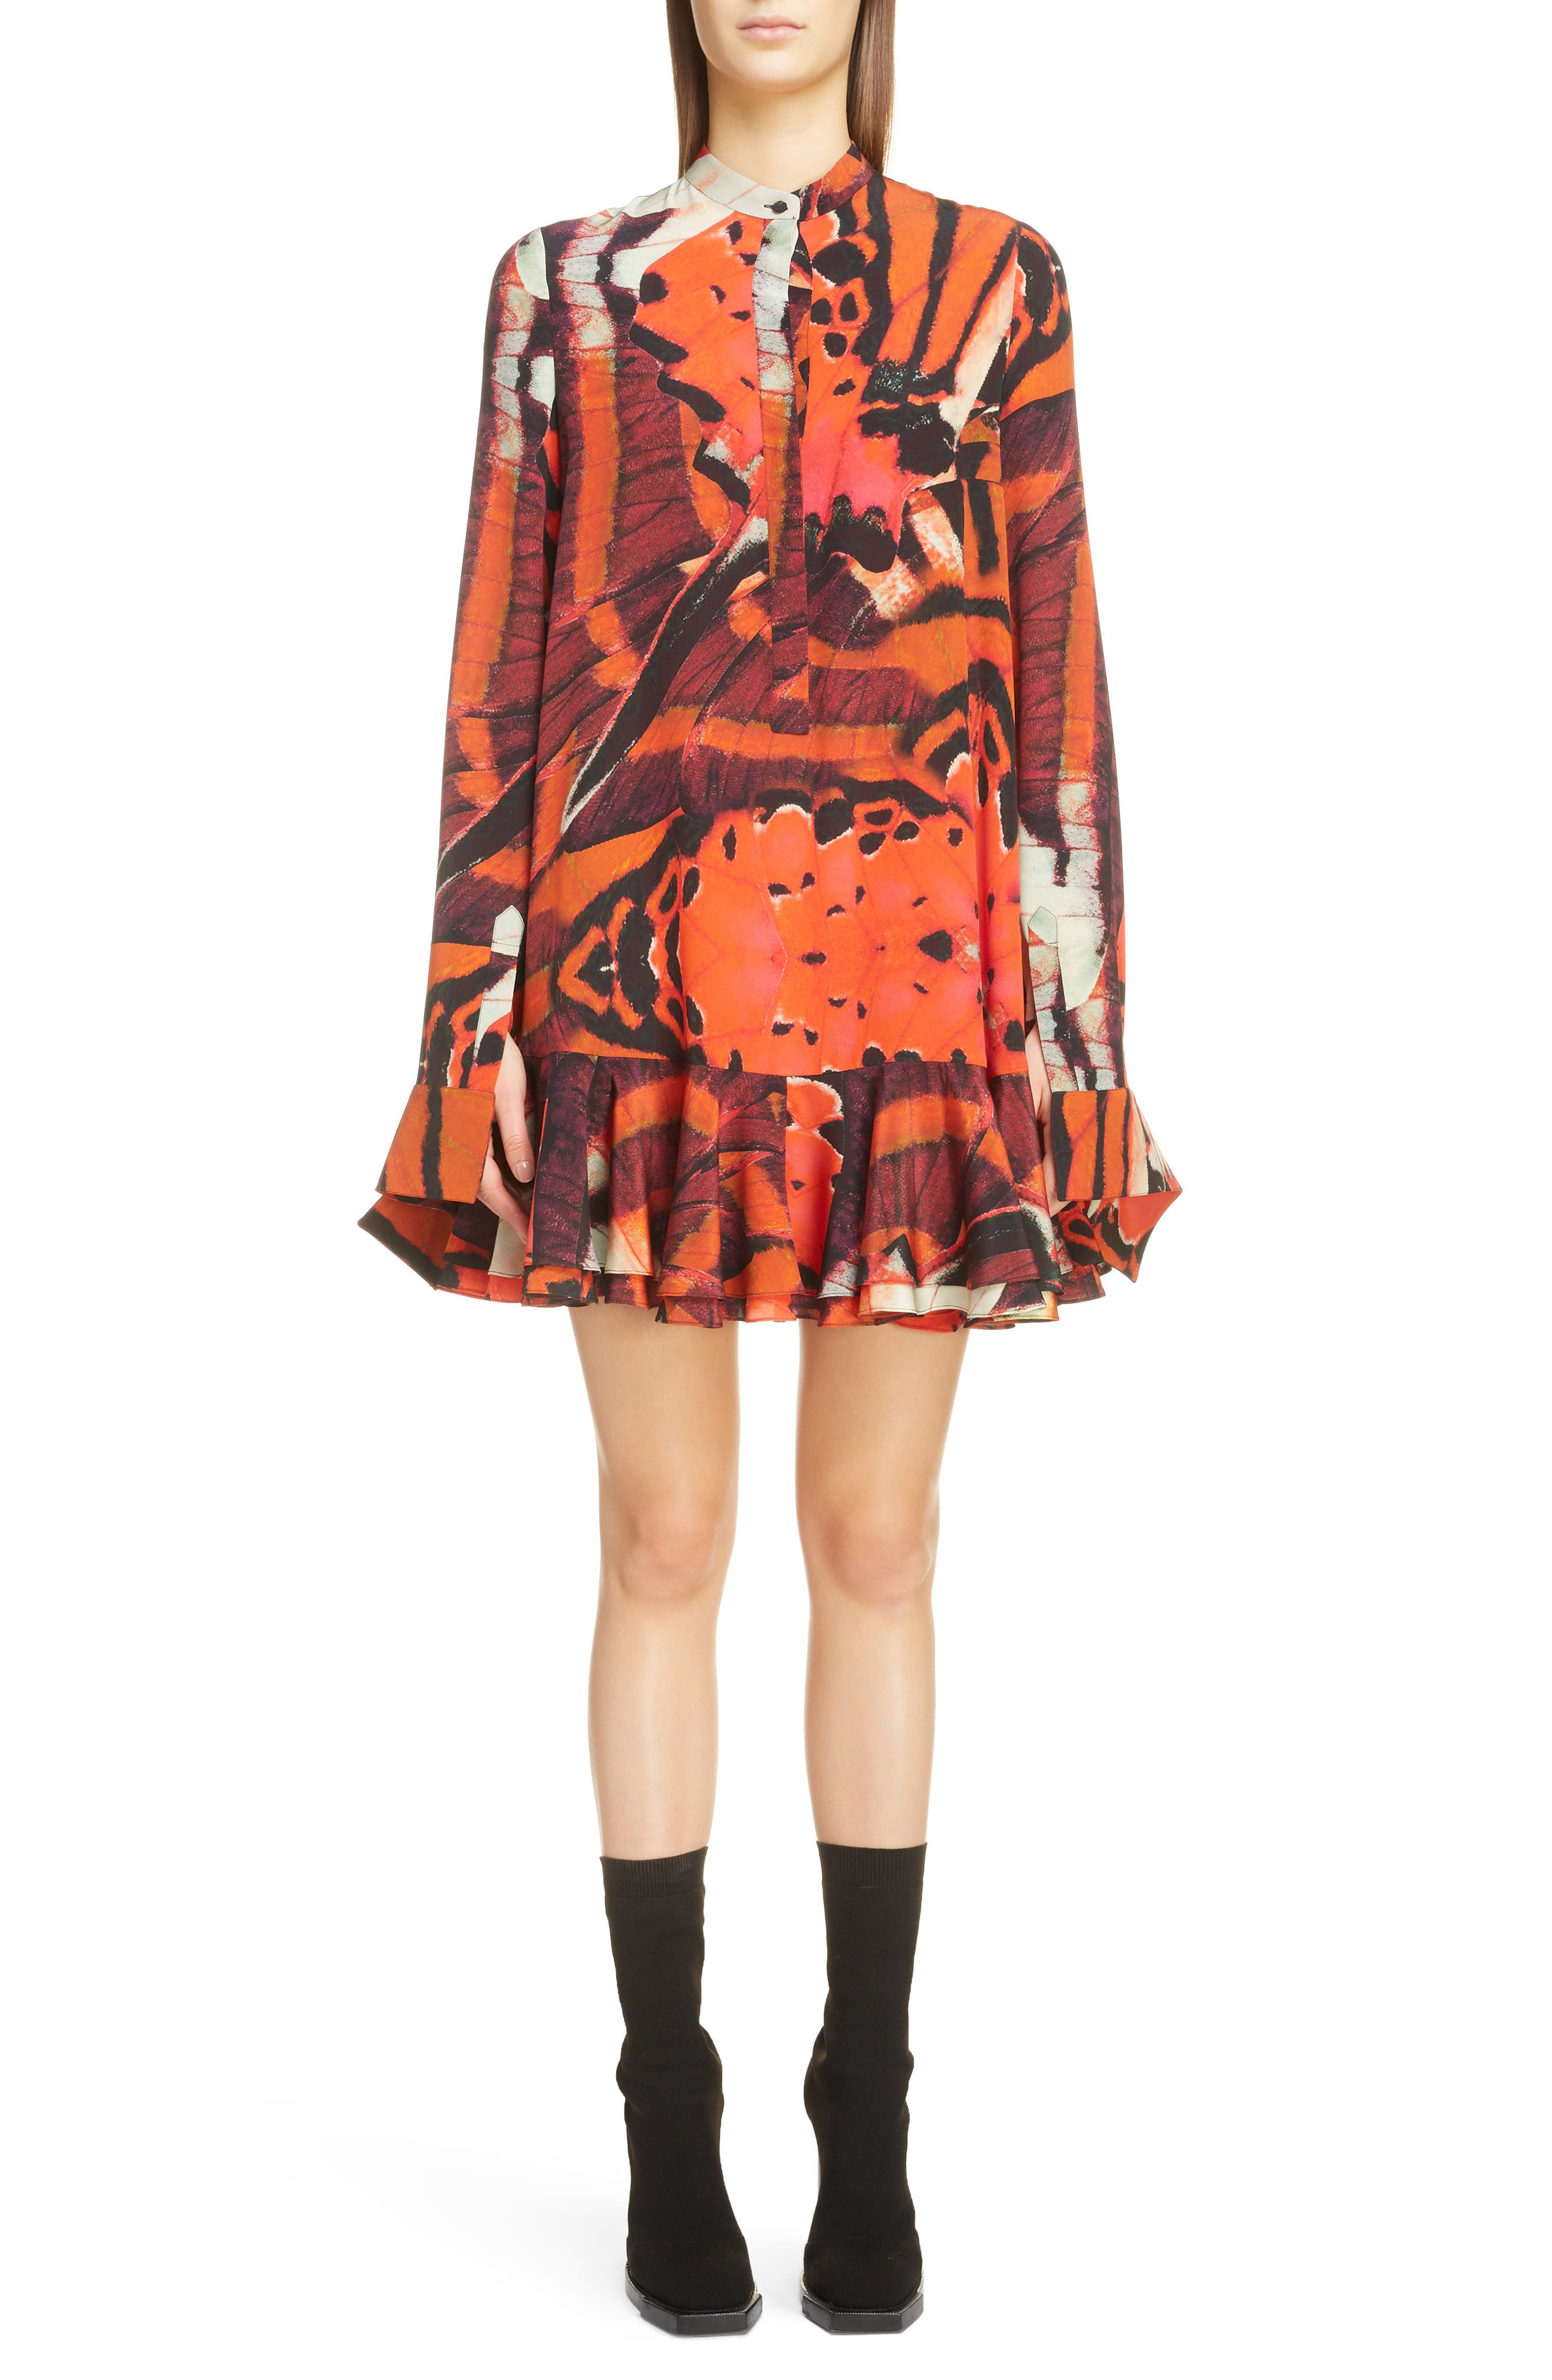 Alexander Mcqueen Butterfly Print Ruffle Hem Silk Dress, 6 IT - Red